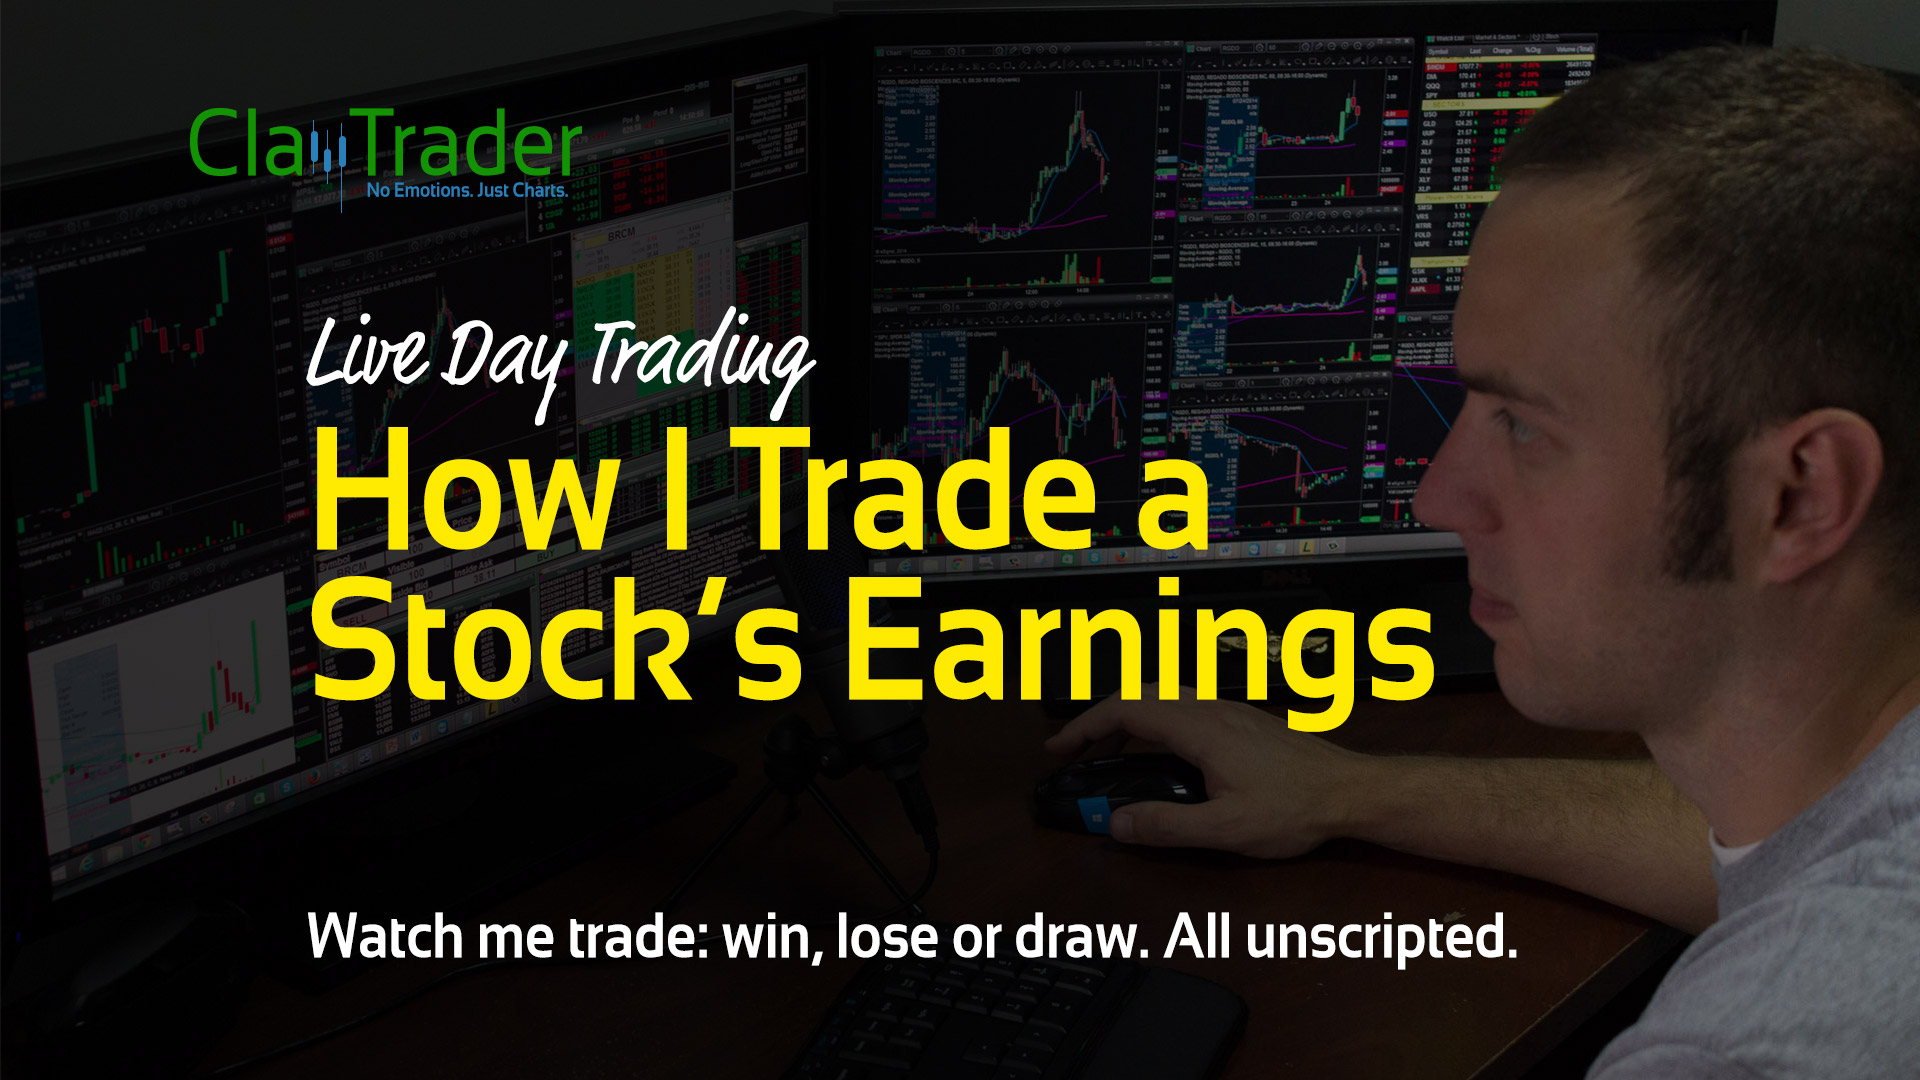 Live Day Trading – How I Trade a Stock's Earnings